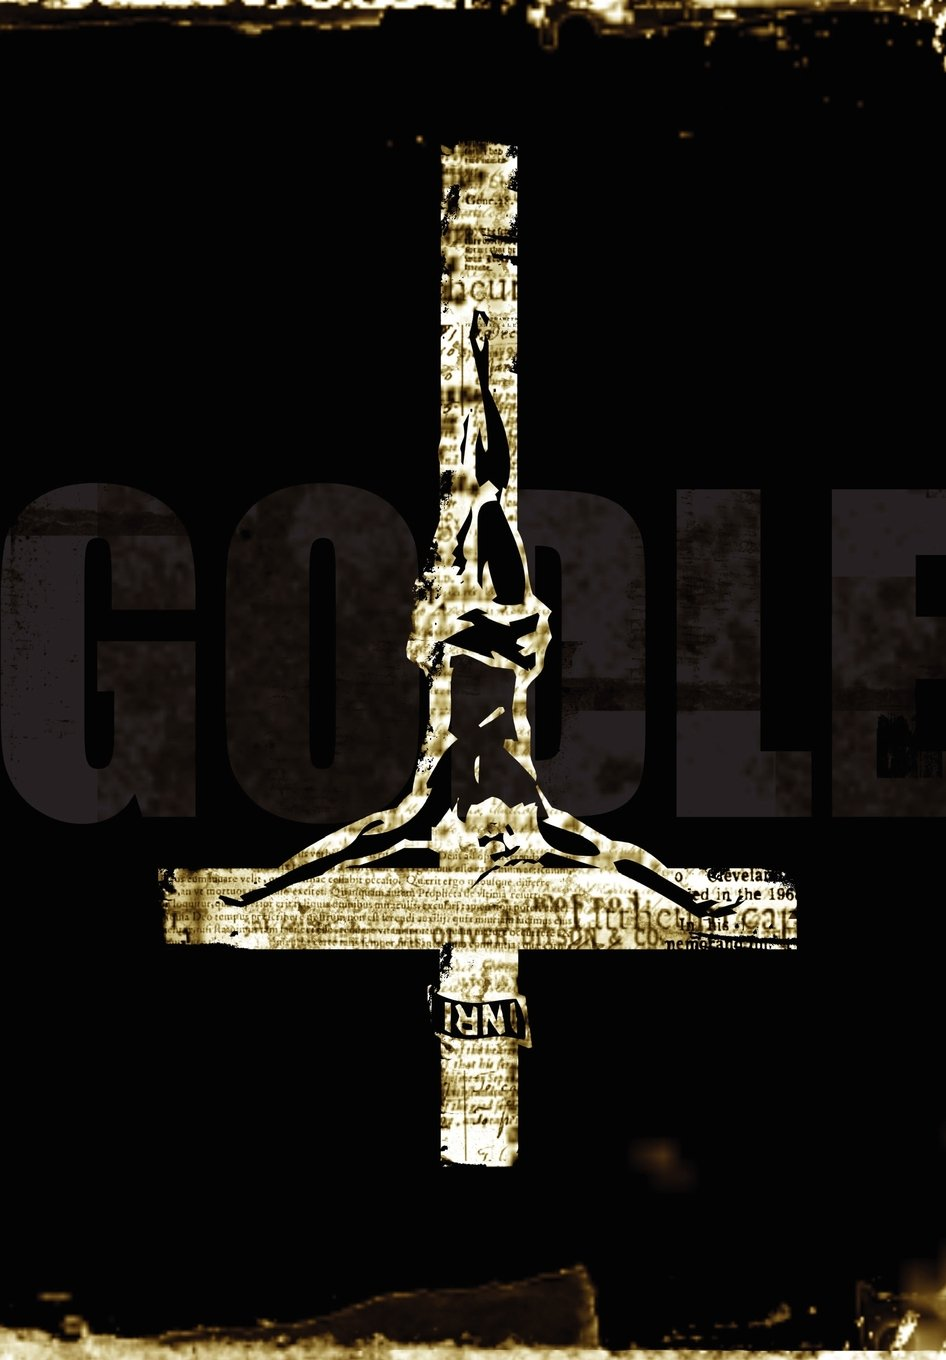 Godless by Drew Stepek - Buy Now